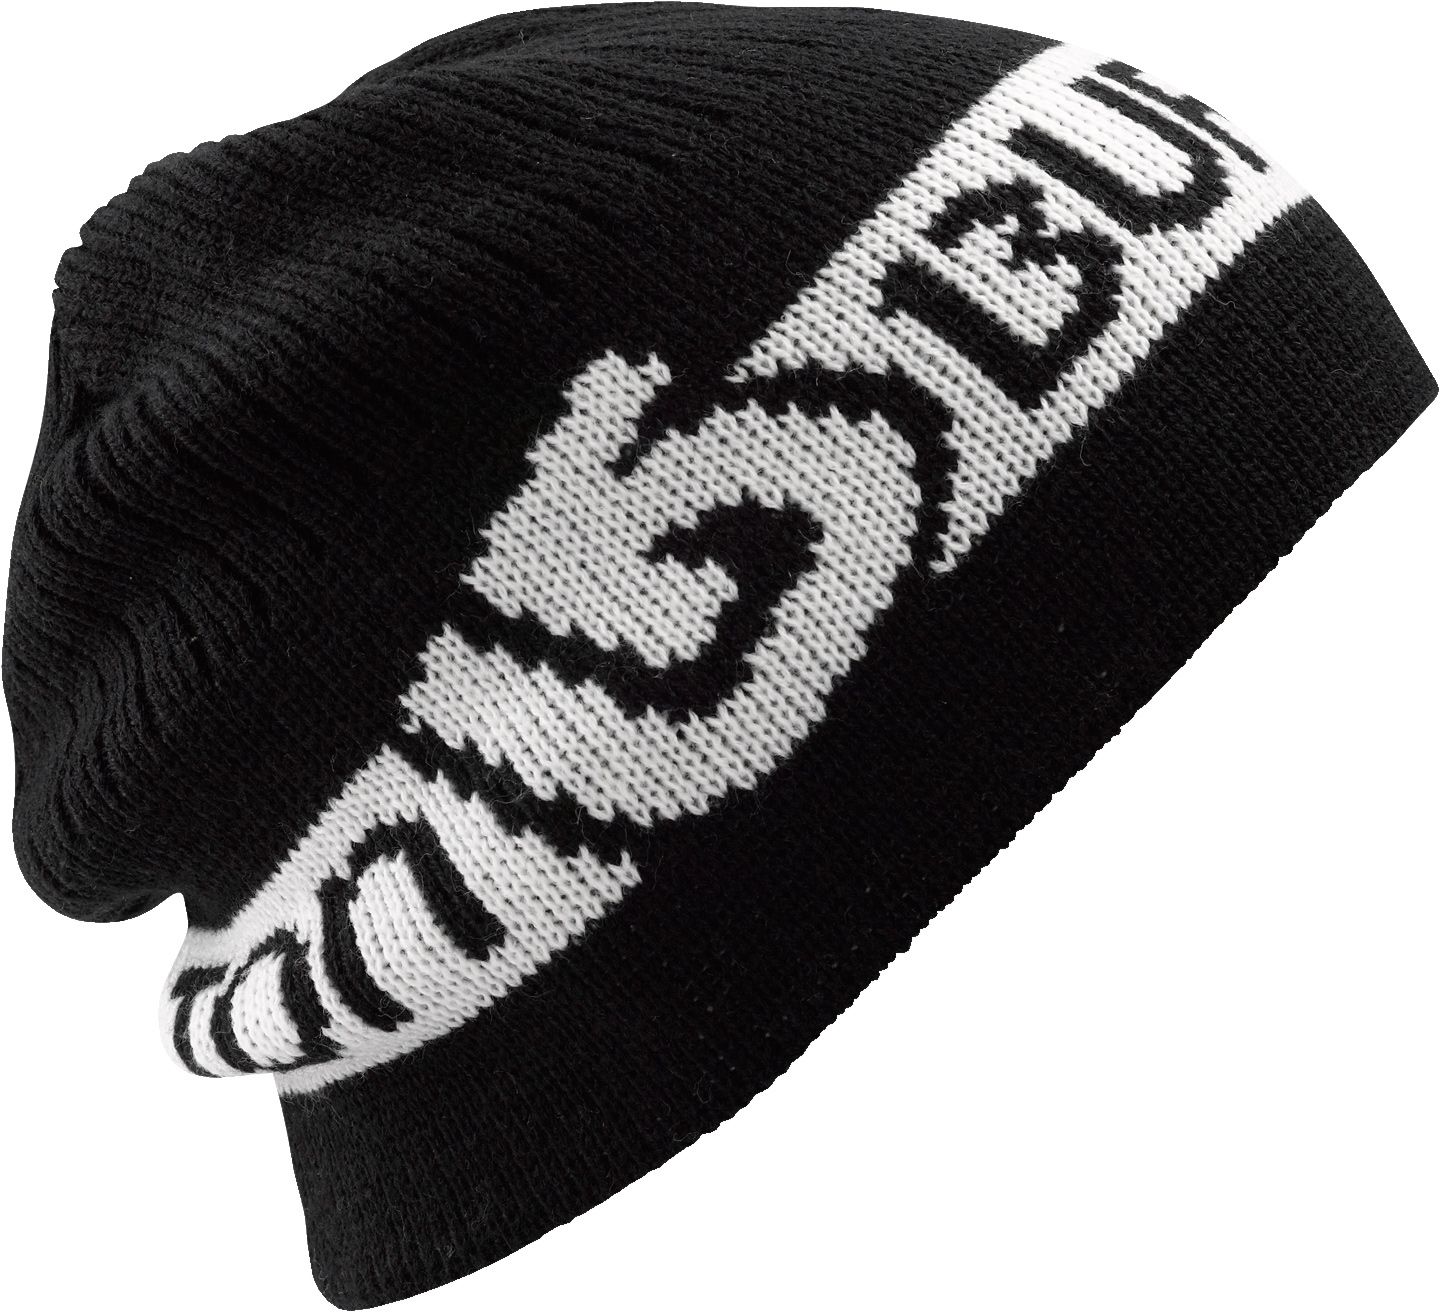 Snowboard Key Features of the Burton Dart Beanie: 100% Acrylic Allover Jacquard Bold Word Mark Slouch Fit - $25.00